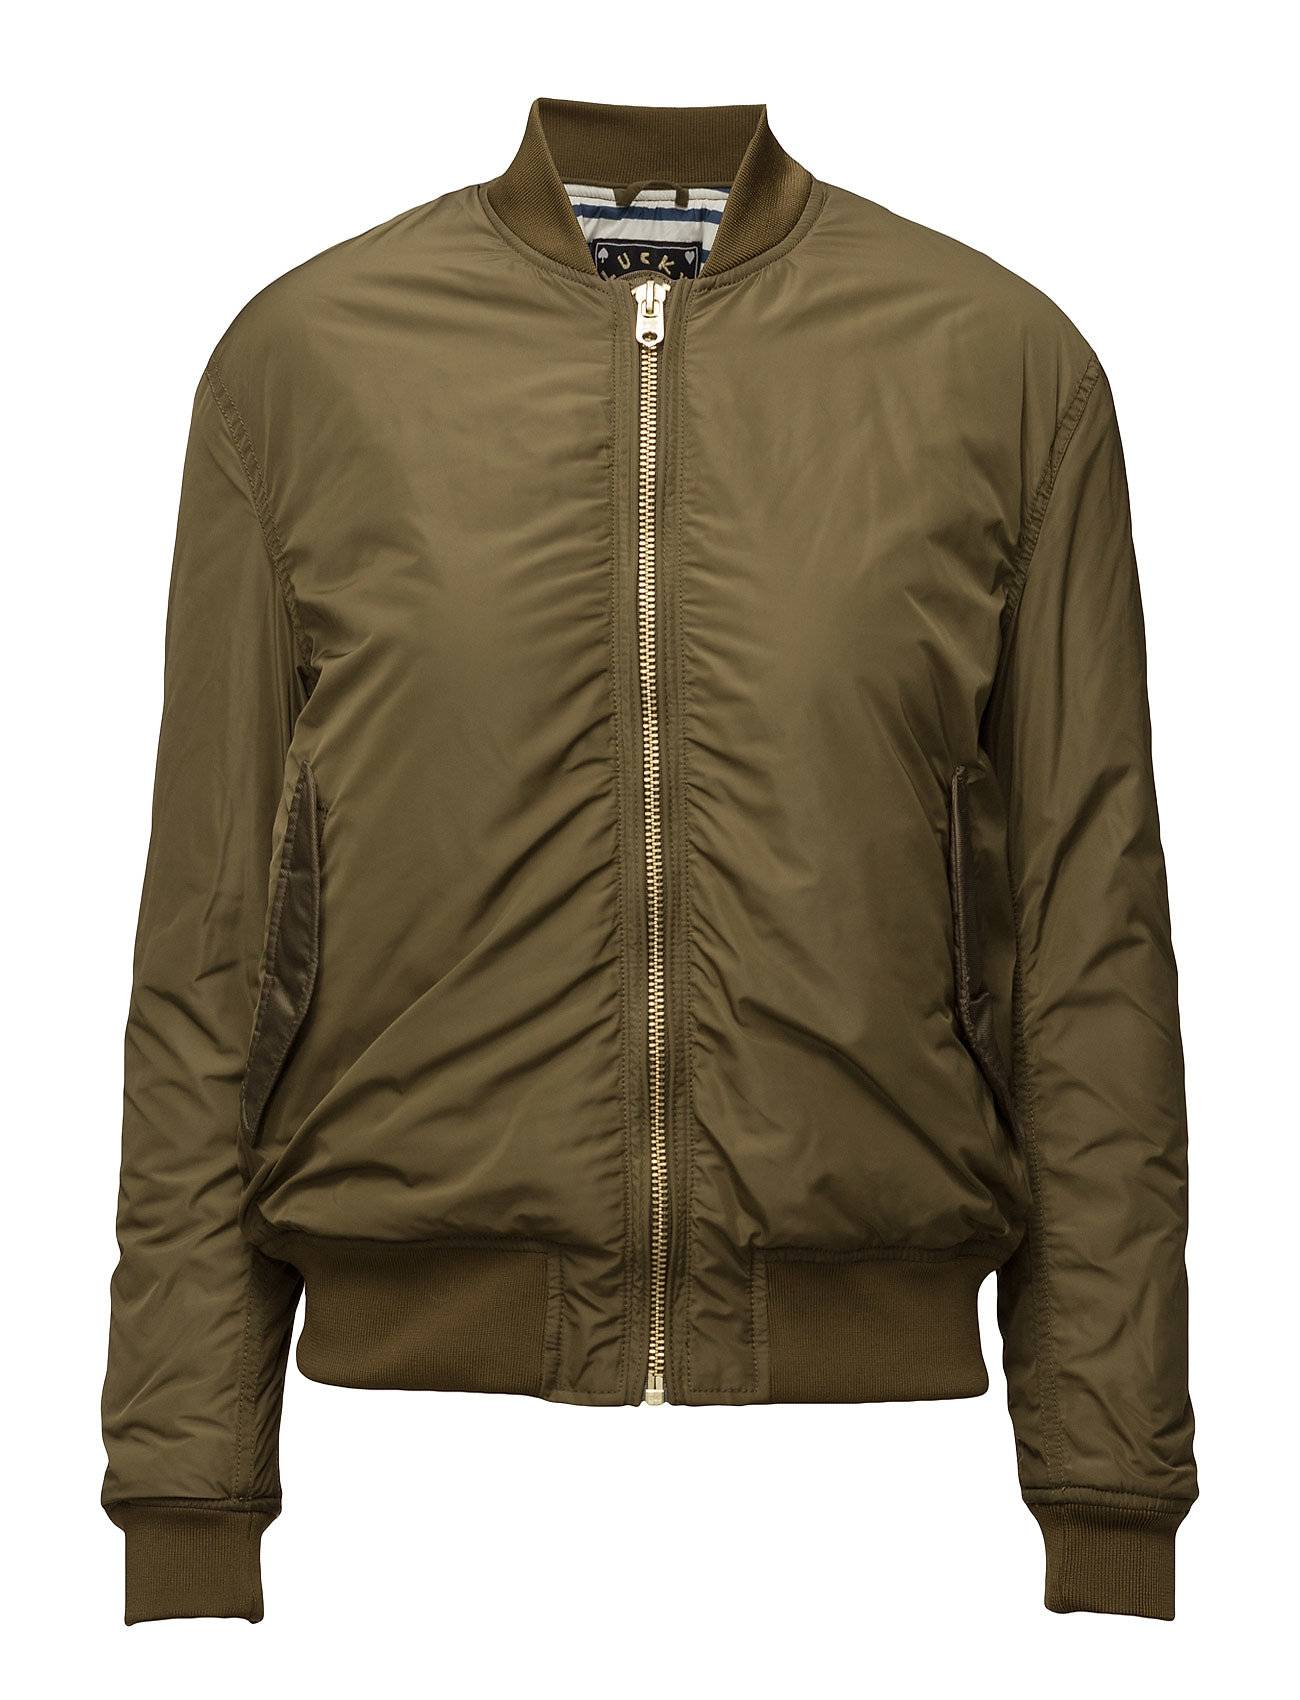 Scotch & Soda Bomber With Special Rib On Sleeves